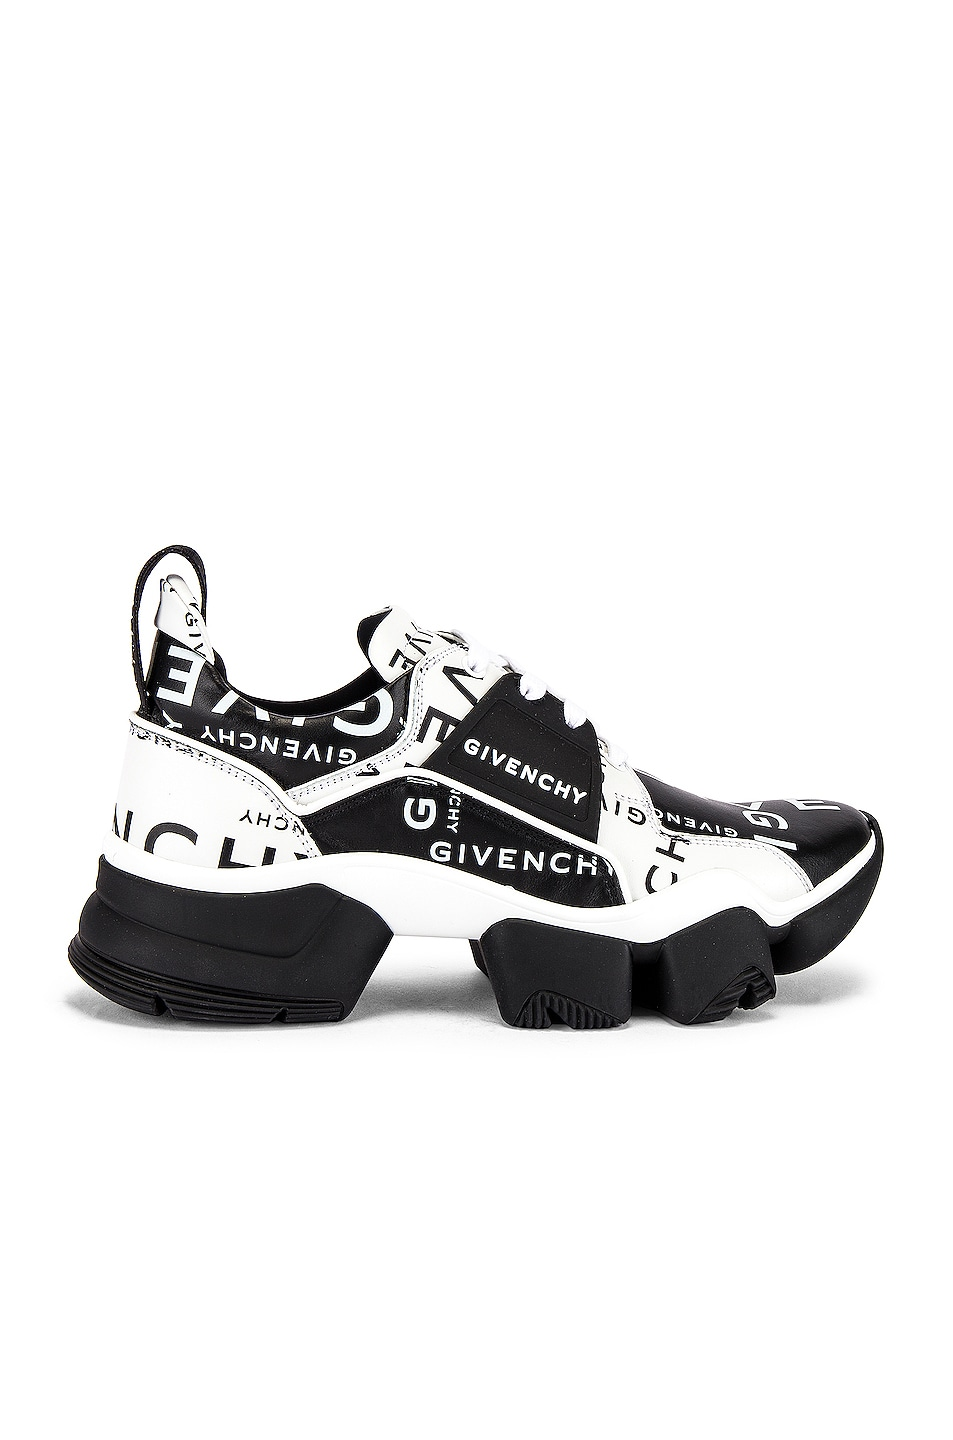 Image 2 of Givenchy Jaw Sneaker in Black & White